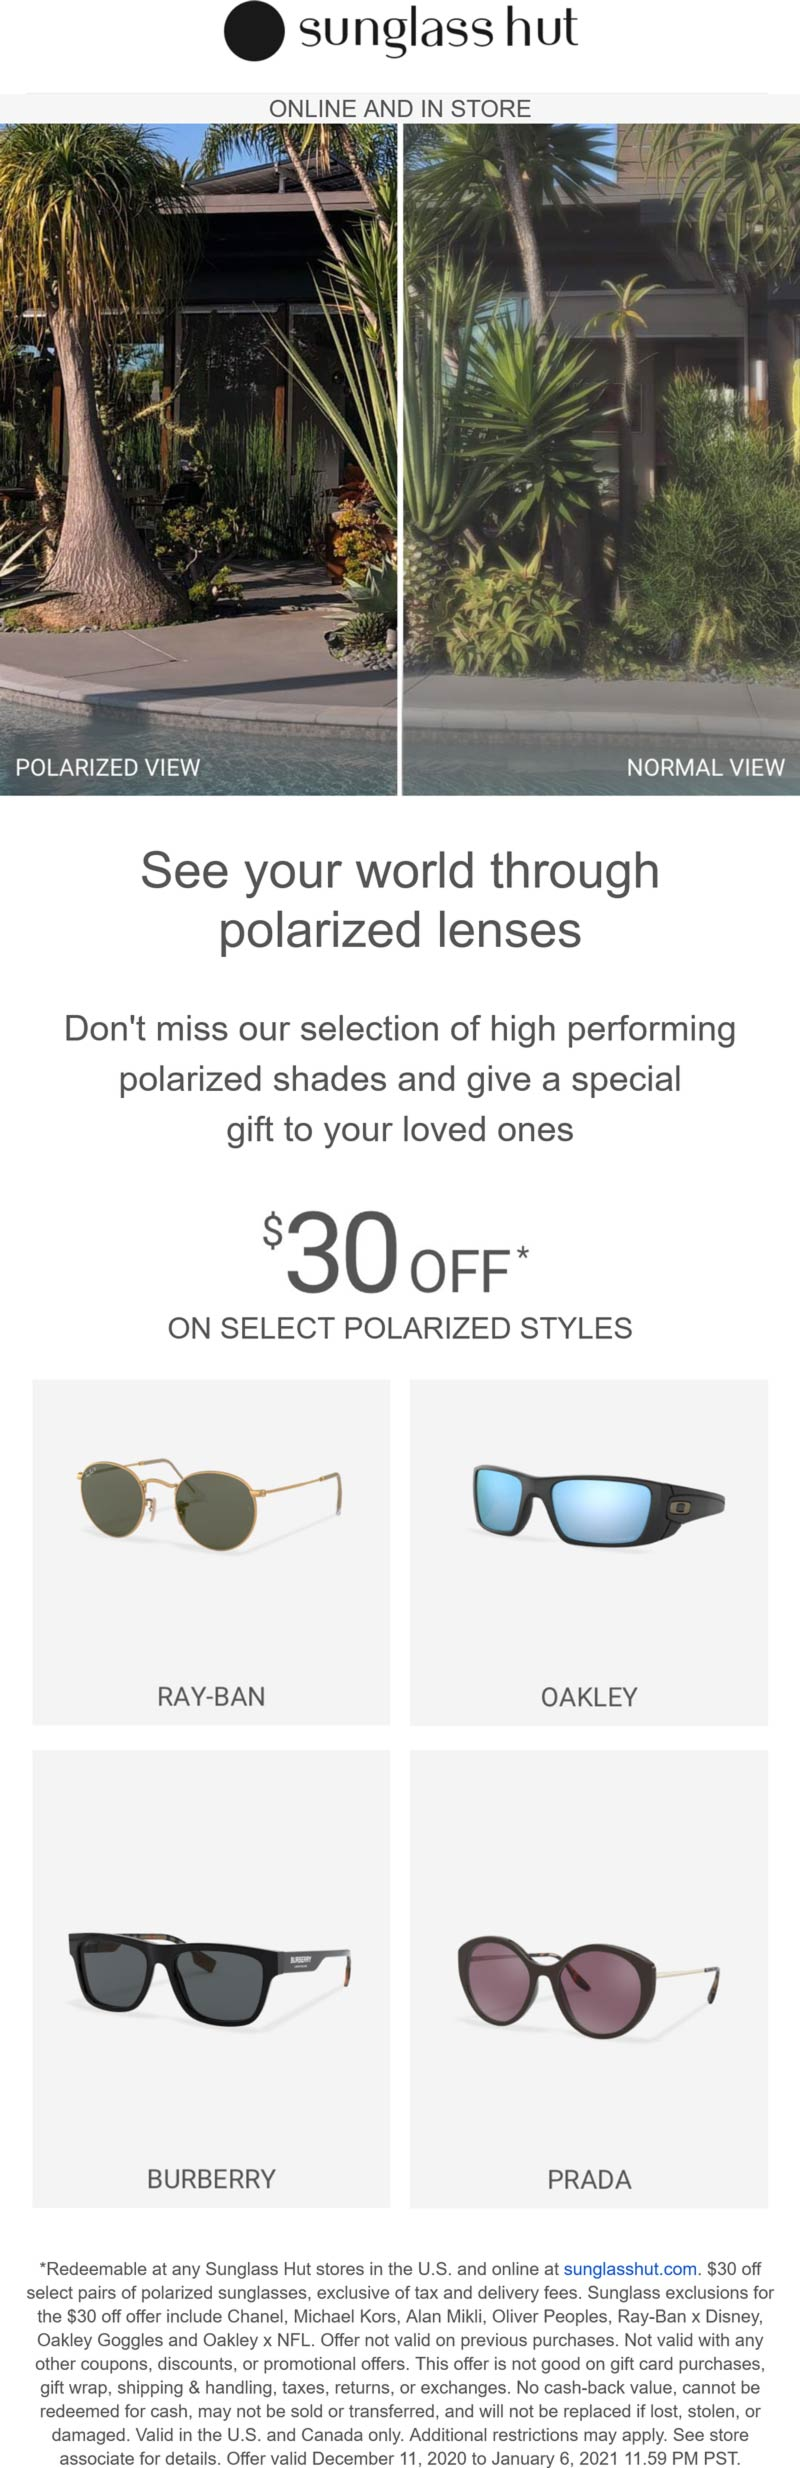 Sunglass Hut stores Coupon  $30 off polarized sunglasses at Sunglass Hut, ditto online #sunglasshut